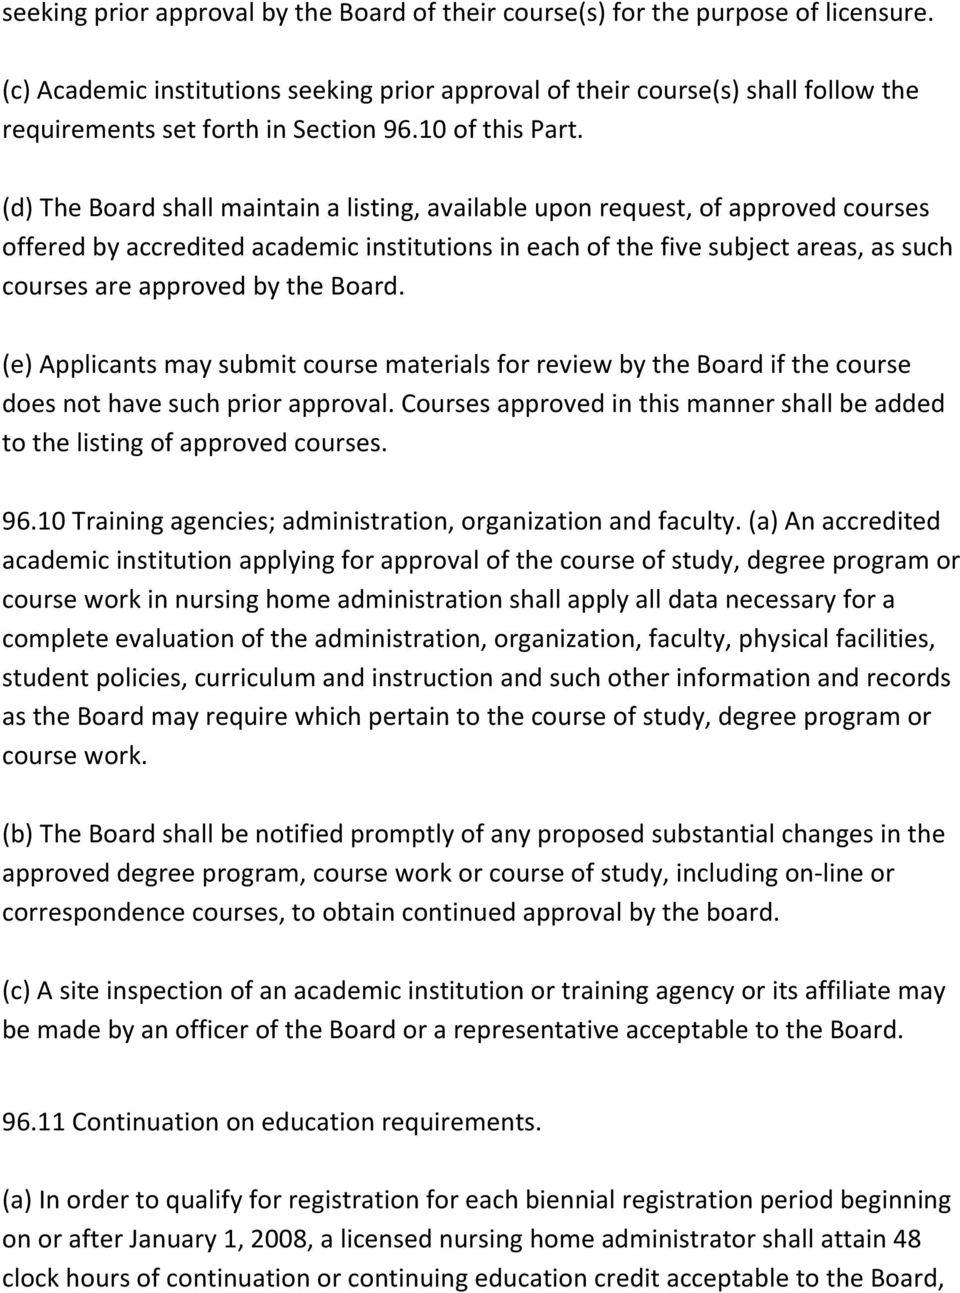 (d) The Board shall maintain a listing, available upon request, of approved courses offered by accredited academic institutions in each of the five subject areas, as such courses are approved by the